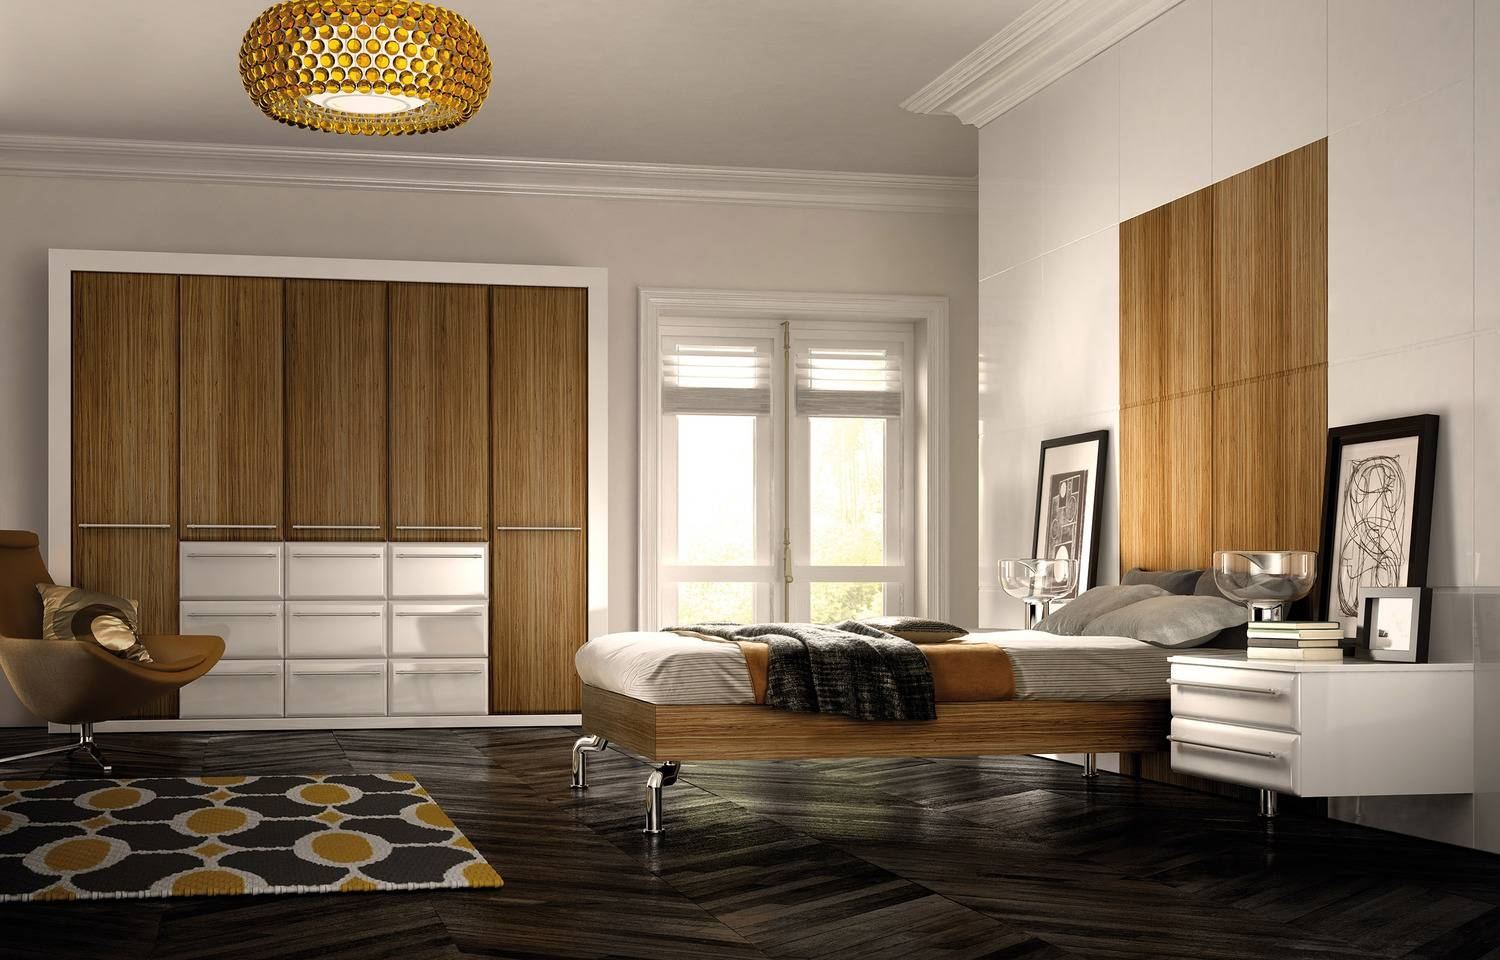 Wardrobes : Bespoke Wardrobes Tips For Your High Quality Choice Pertaining To Solid Wood Built In Wardrobes (View 29 of 30)